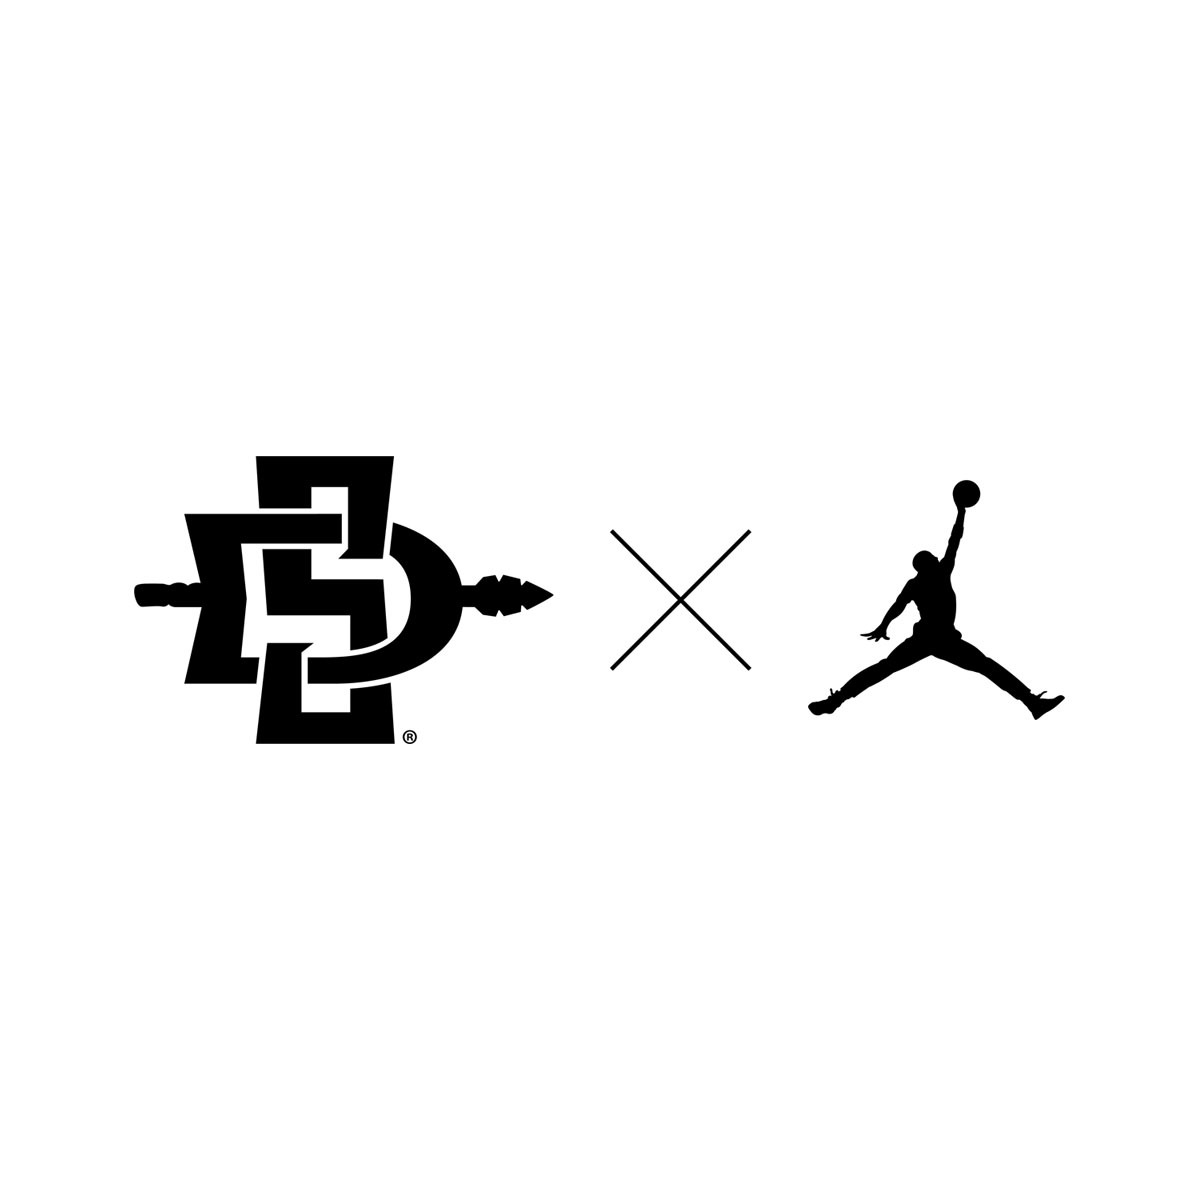 5294fa2de279 SDSU Men s Basketball Joins Jordan Brand Roster - SDSU Athletics